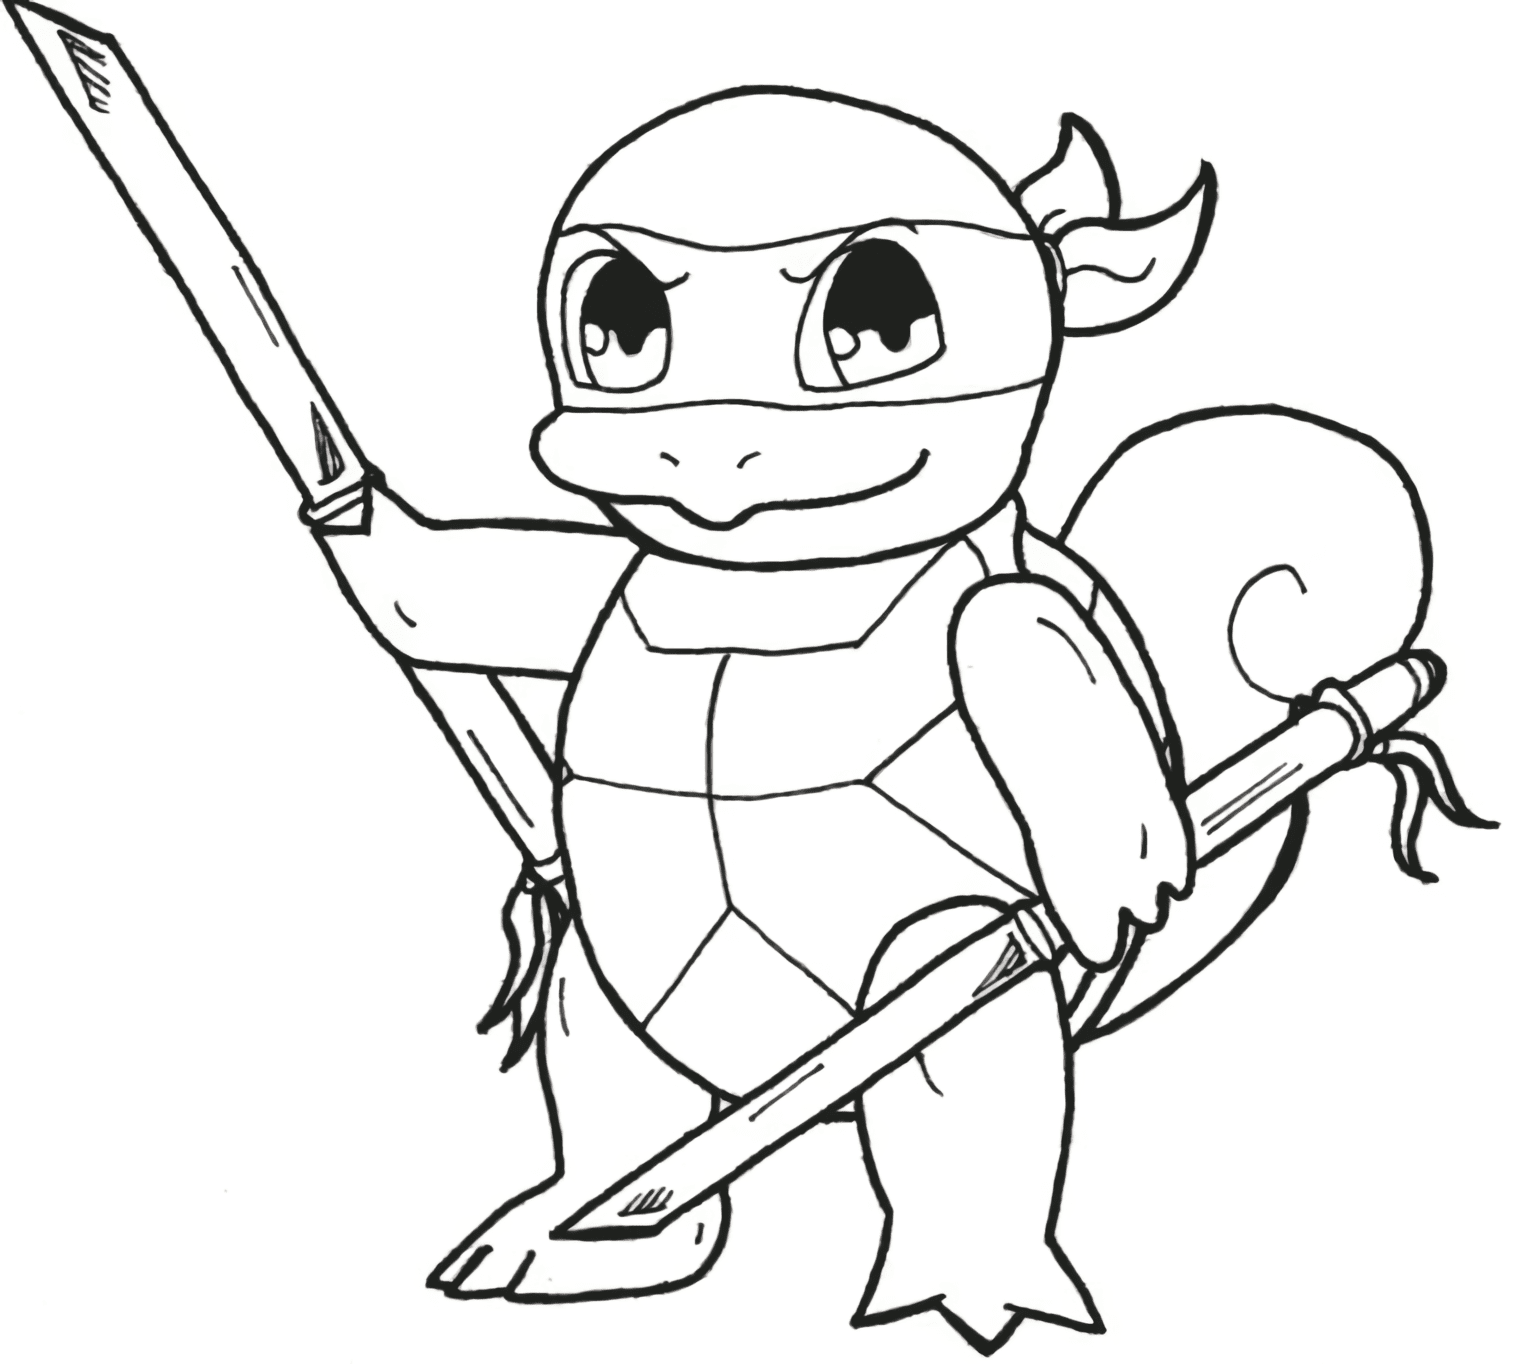 Free Printable Squirtle Coloring Pages For Coloring Activities Squirtle Coloring Page Pokemon Coloring Pages Pokemon Coloring